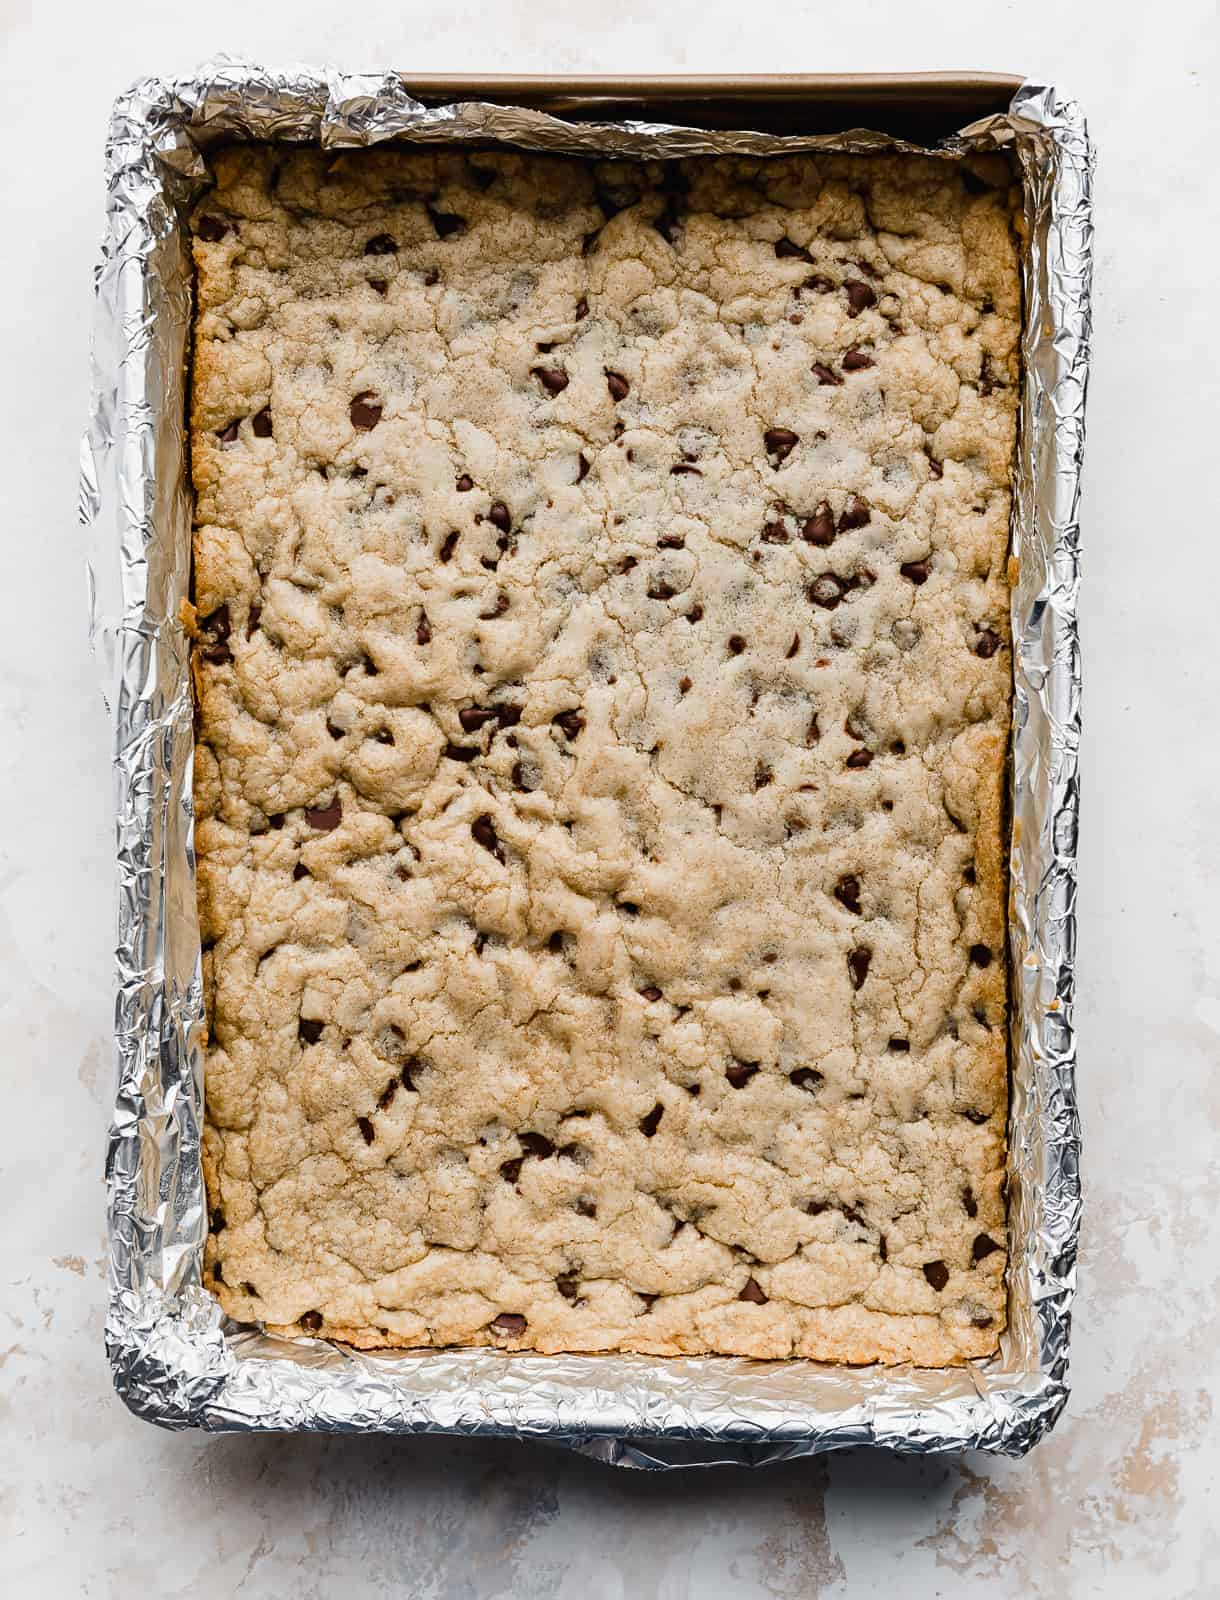 Chocolate Chip Cookie Bars in a foil lined 9x13 inch pan.